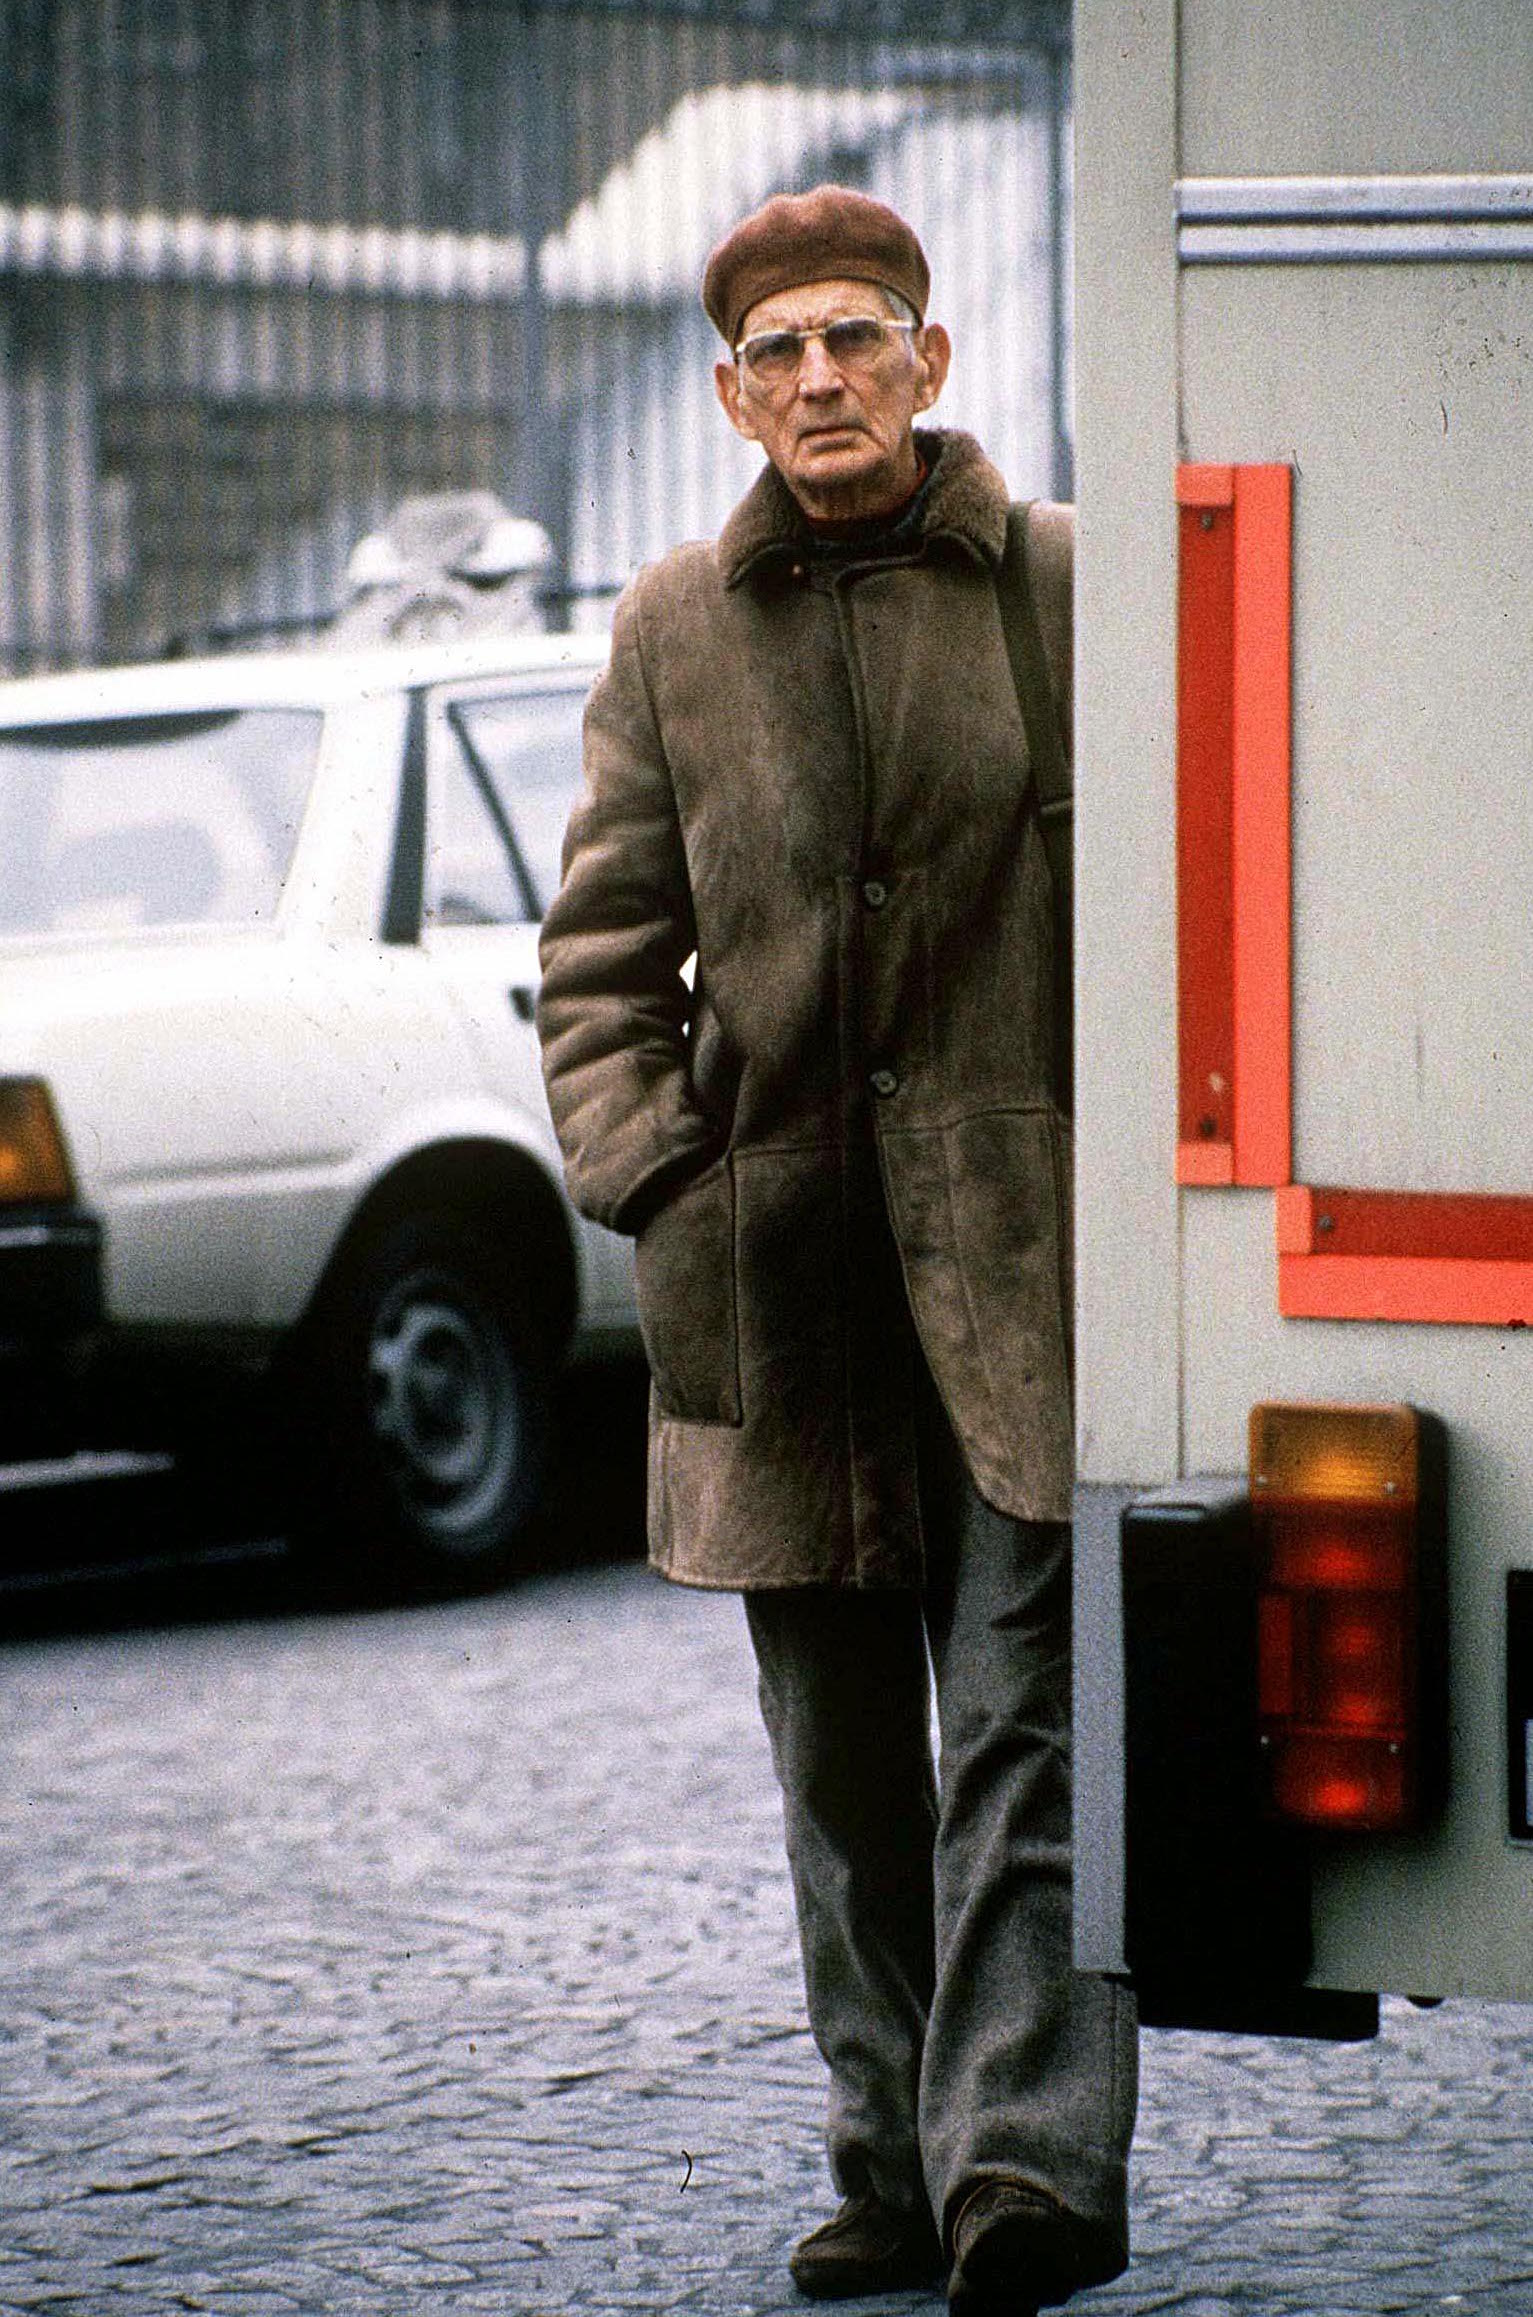 SAMUEL BECKETT, PARIS, FRANCE - APR 1986